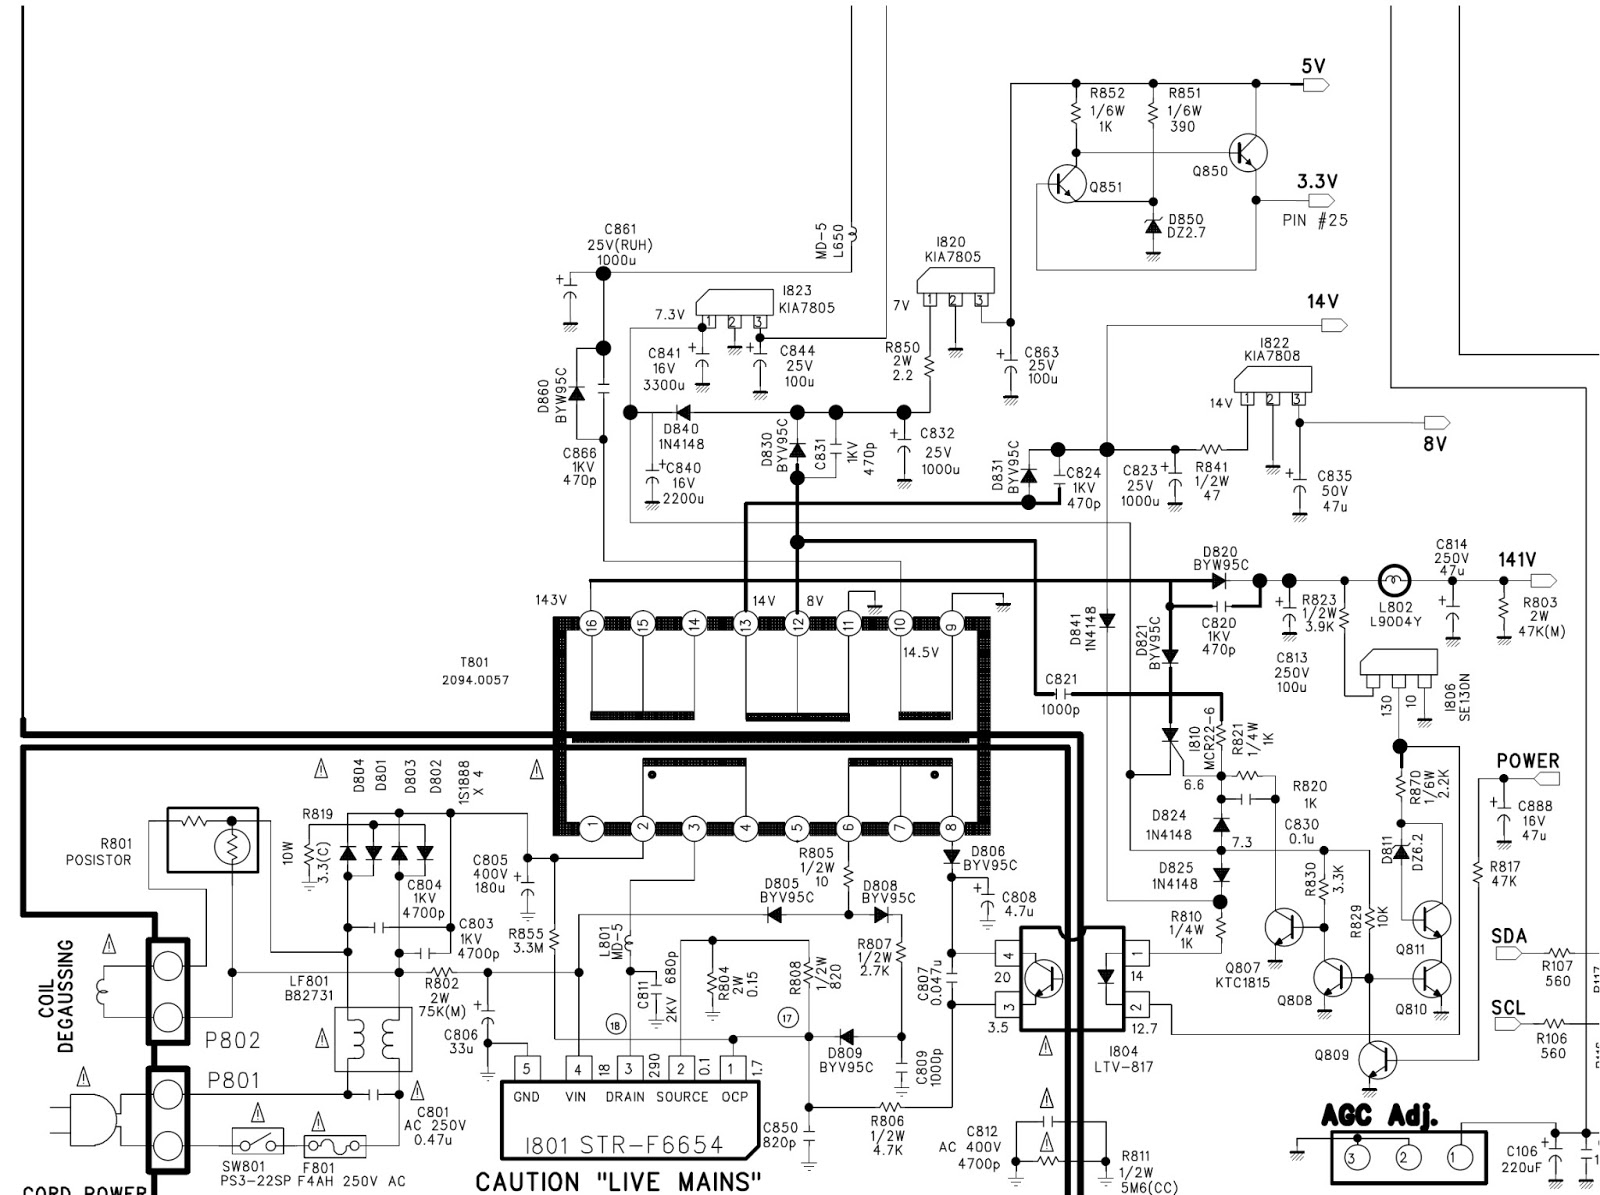 Str F6654 Based Smps Power Supply Schematic Diagram Daewoo Dsc Gold Star Air Conditioner Wiring 3210 Tv Circuit